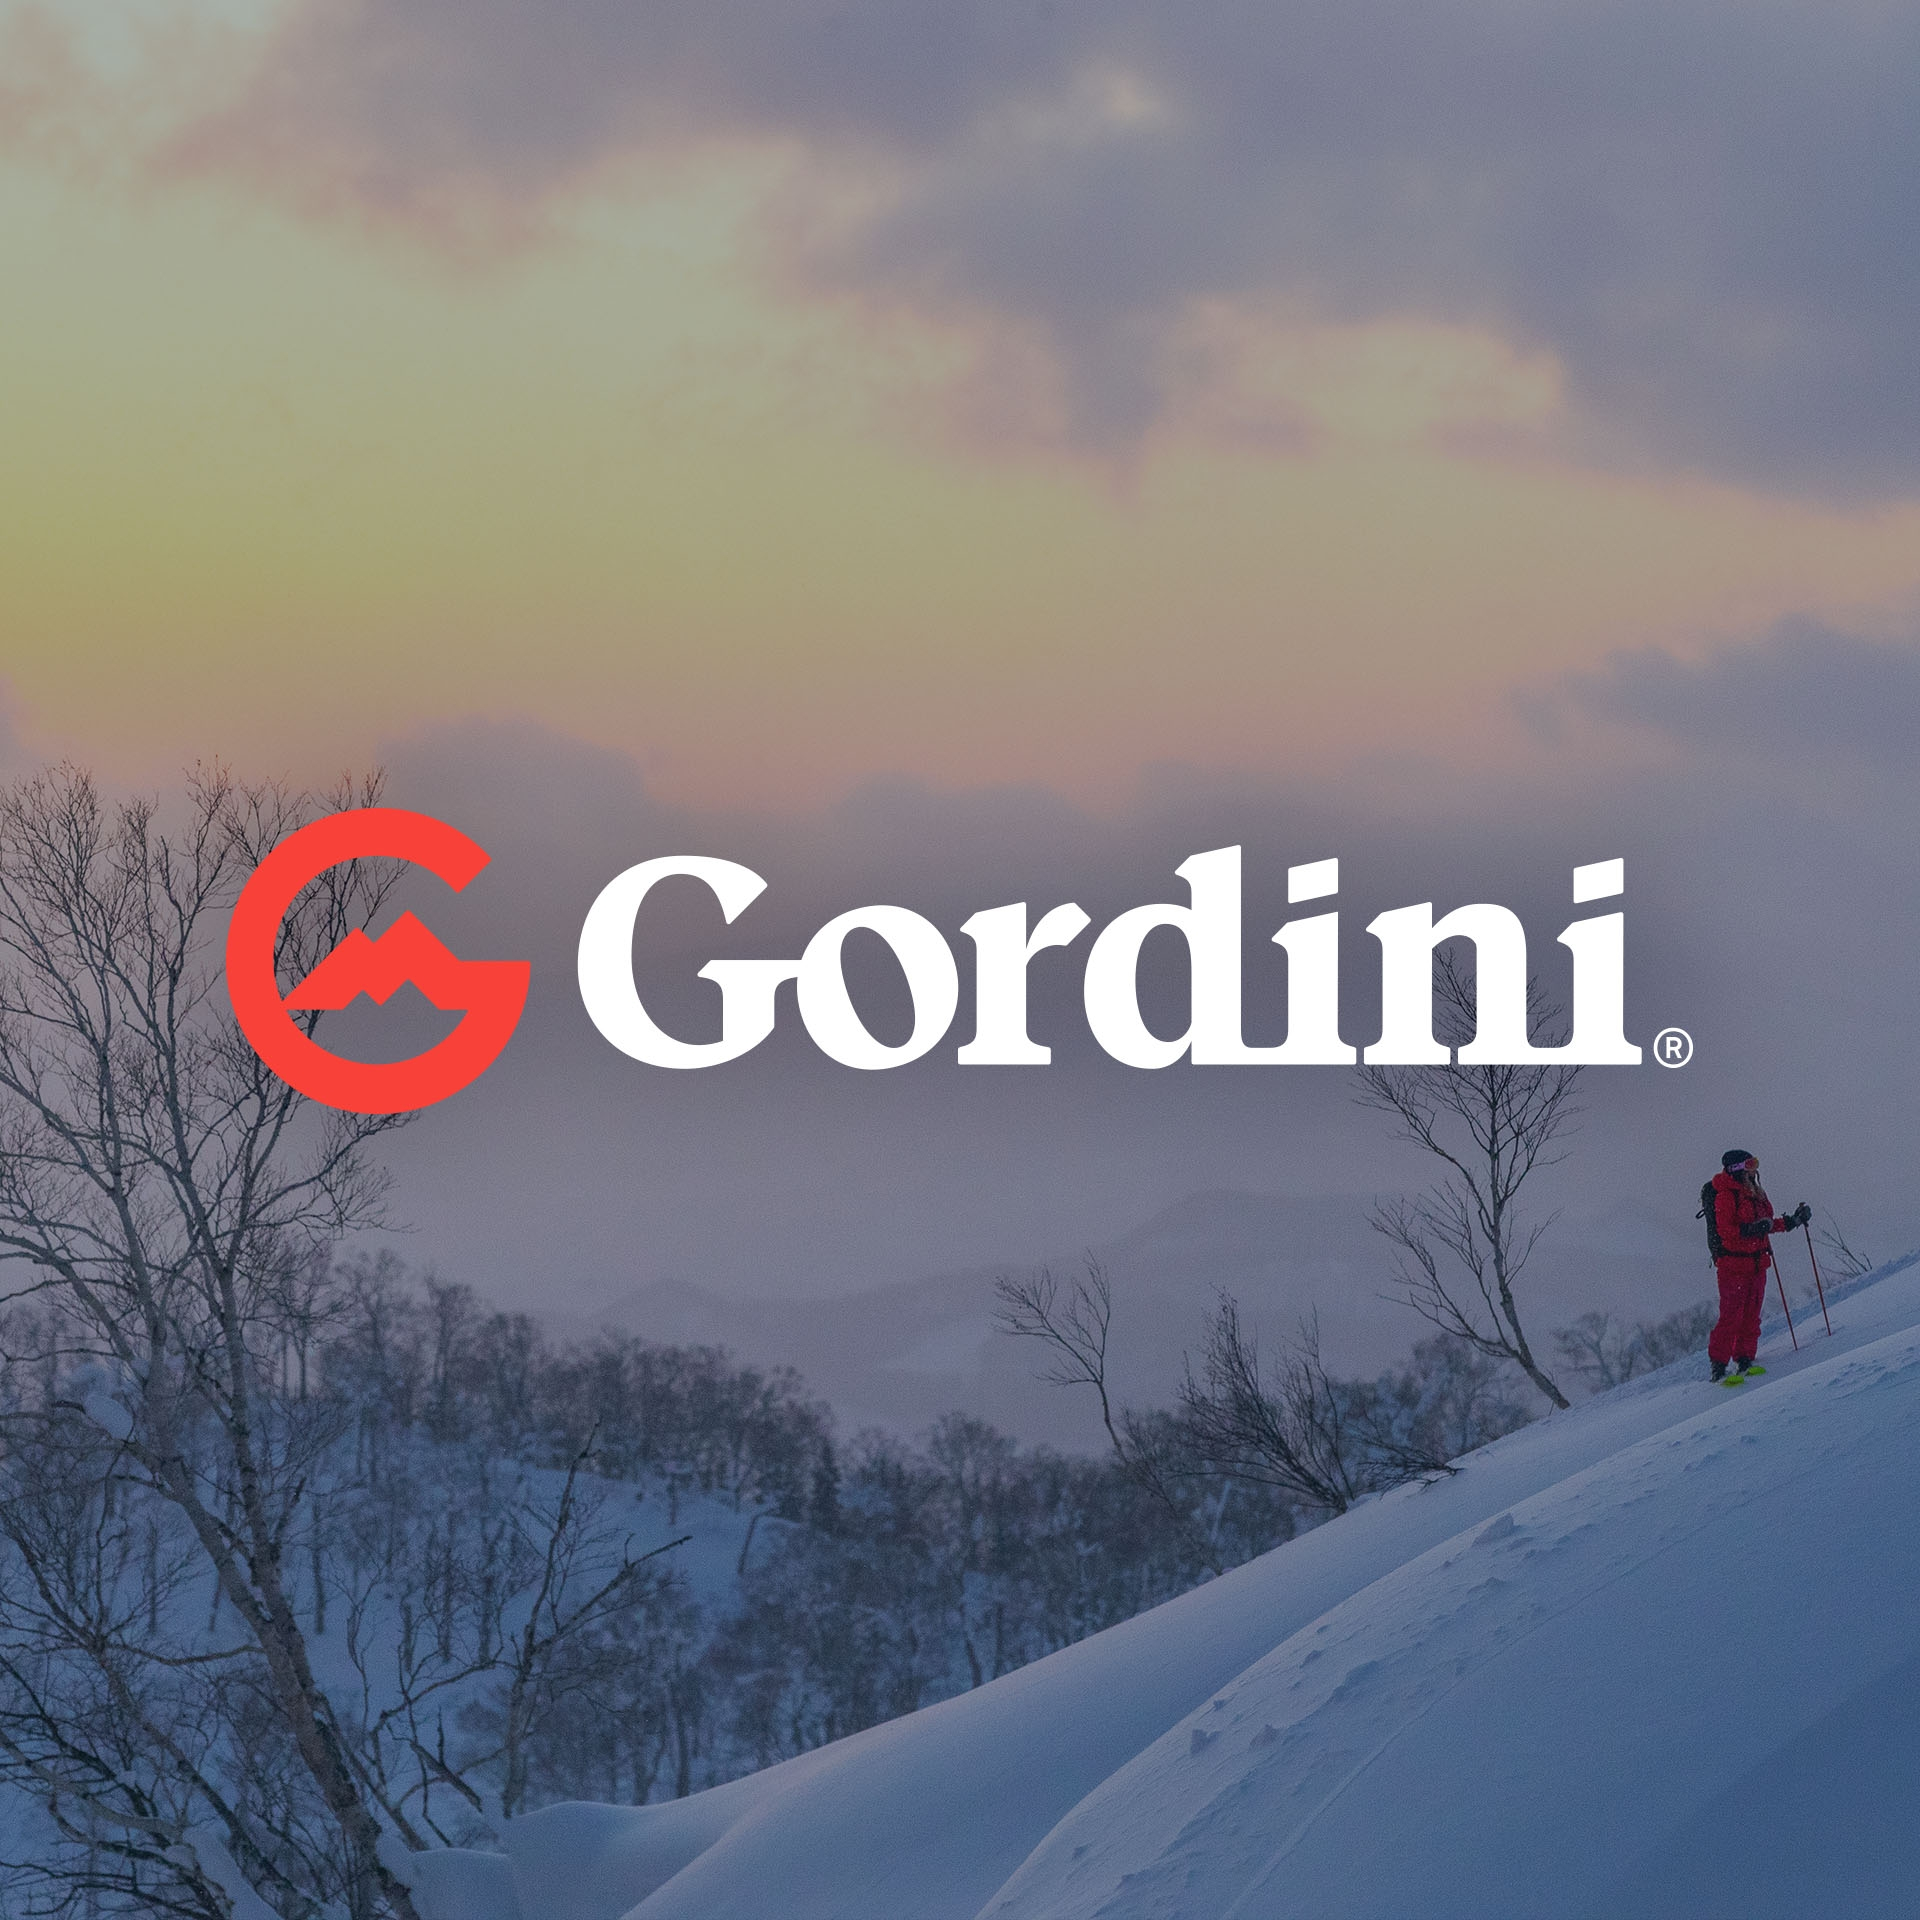 Gordini USA – Branding and Creative Direction